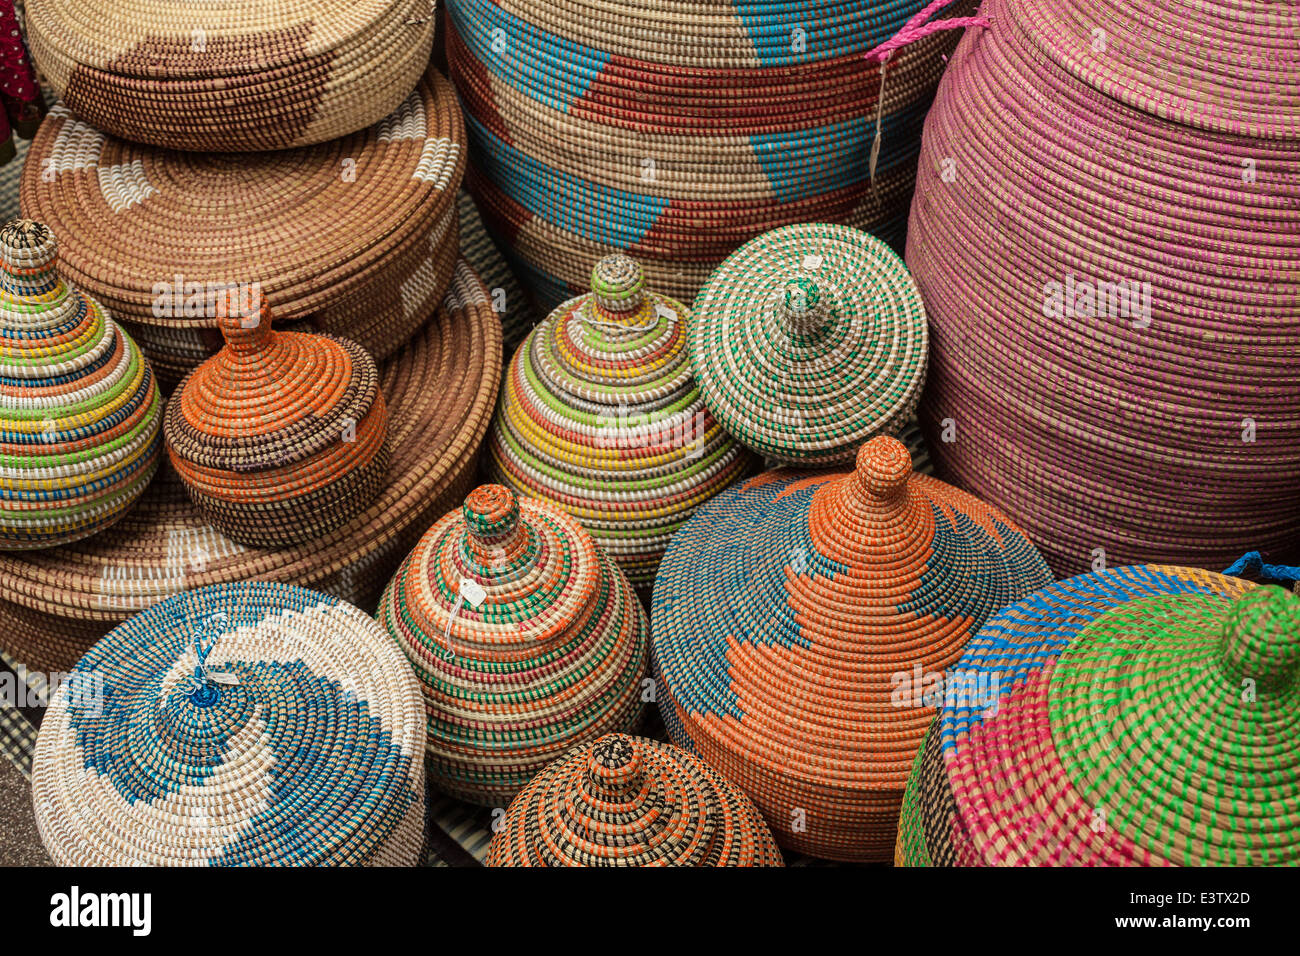 Colourful  circular,multicoloured baskets different sizes in market - Stock Image